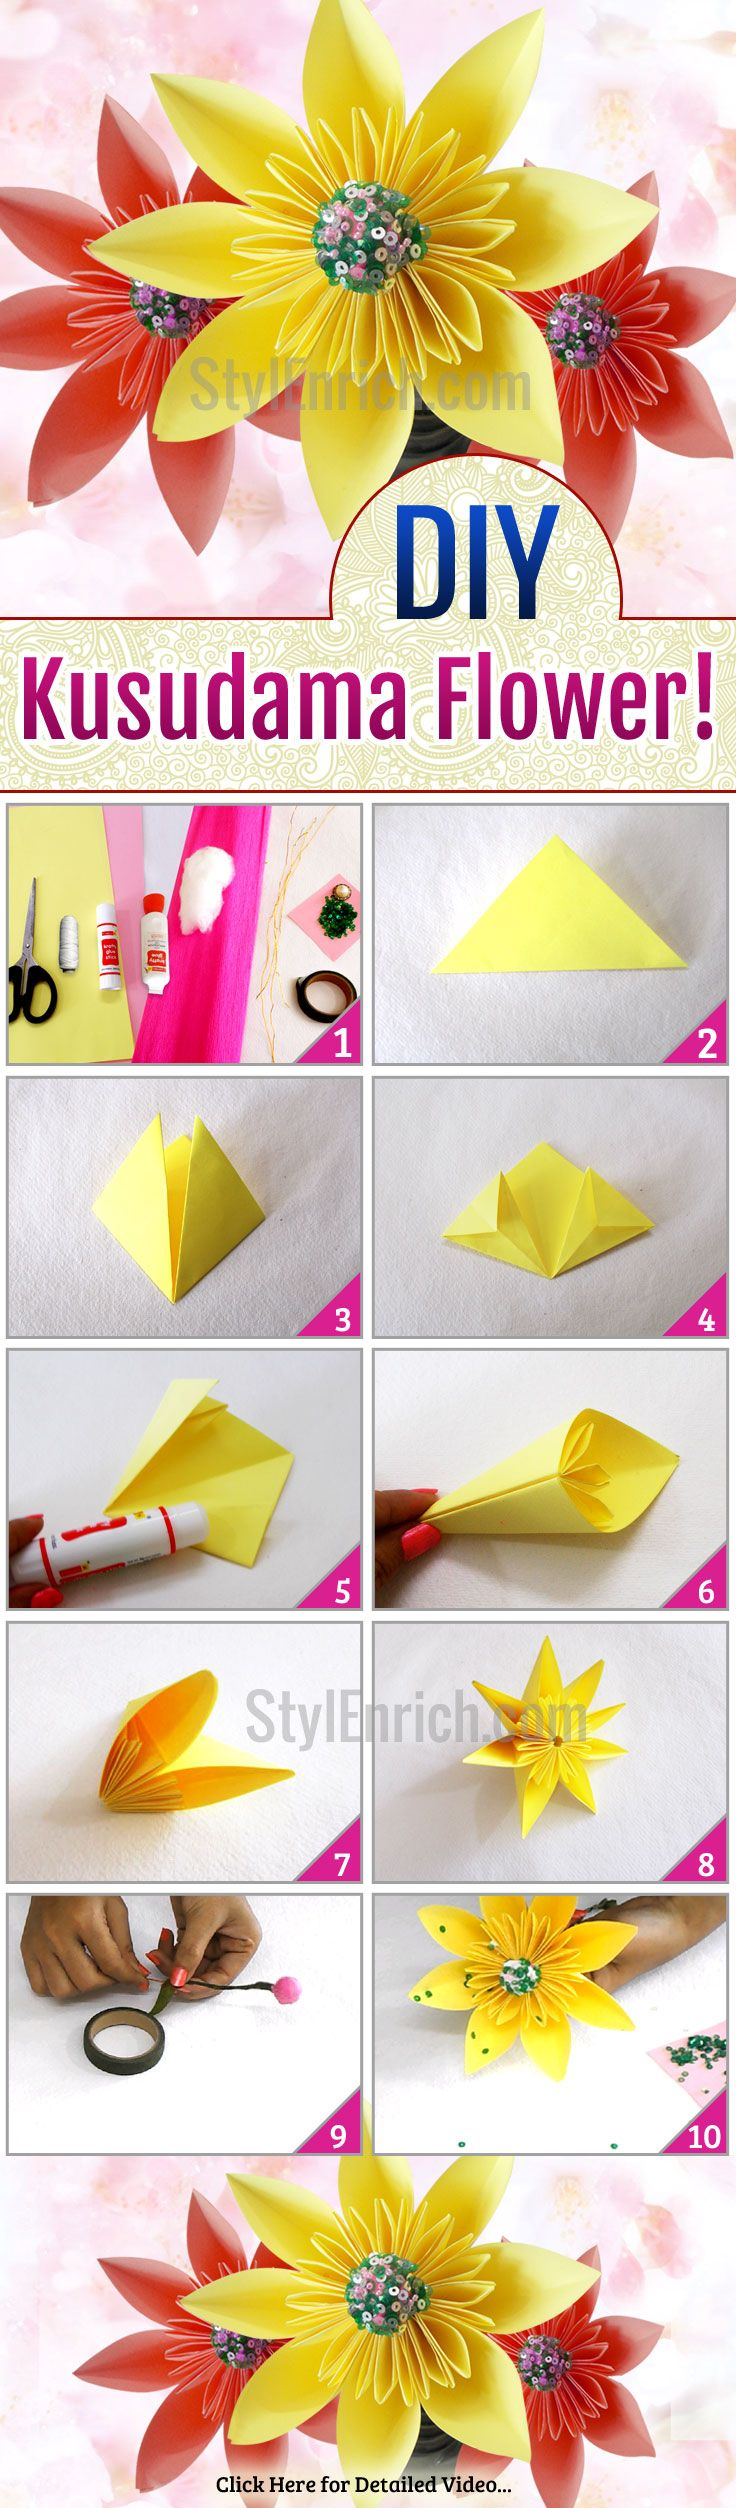 Want To Know How To Make Beautiful & Super Easy #diypaperflowers? Here Are  The